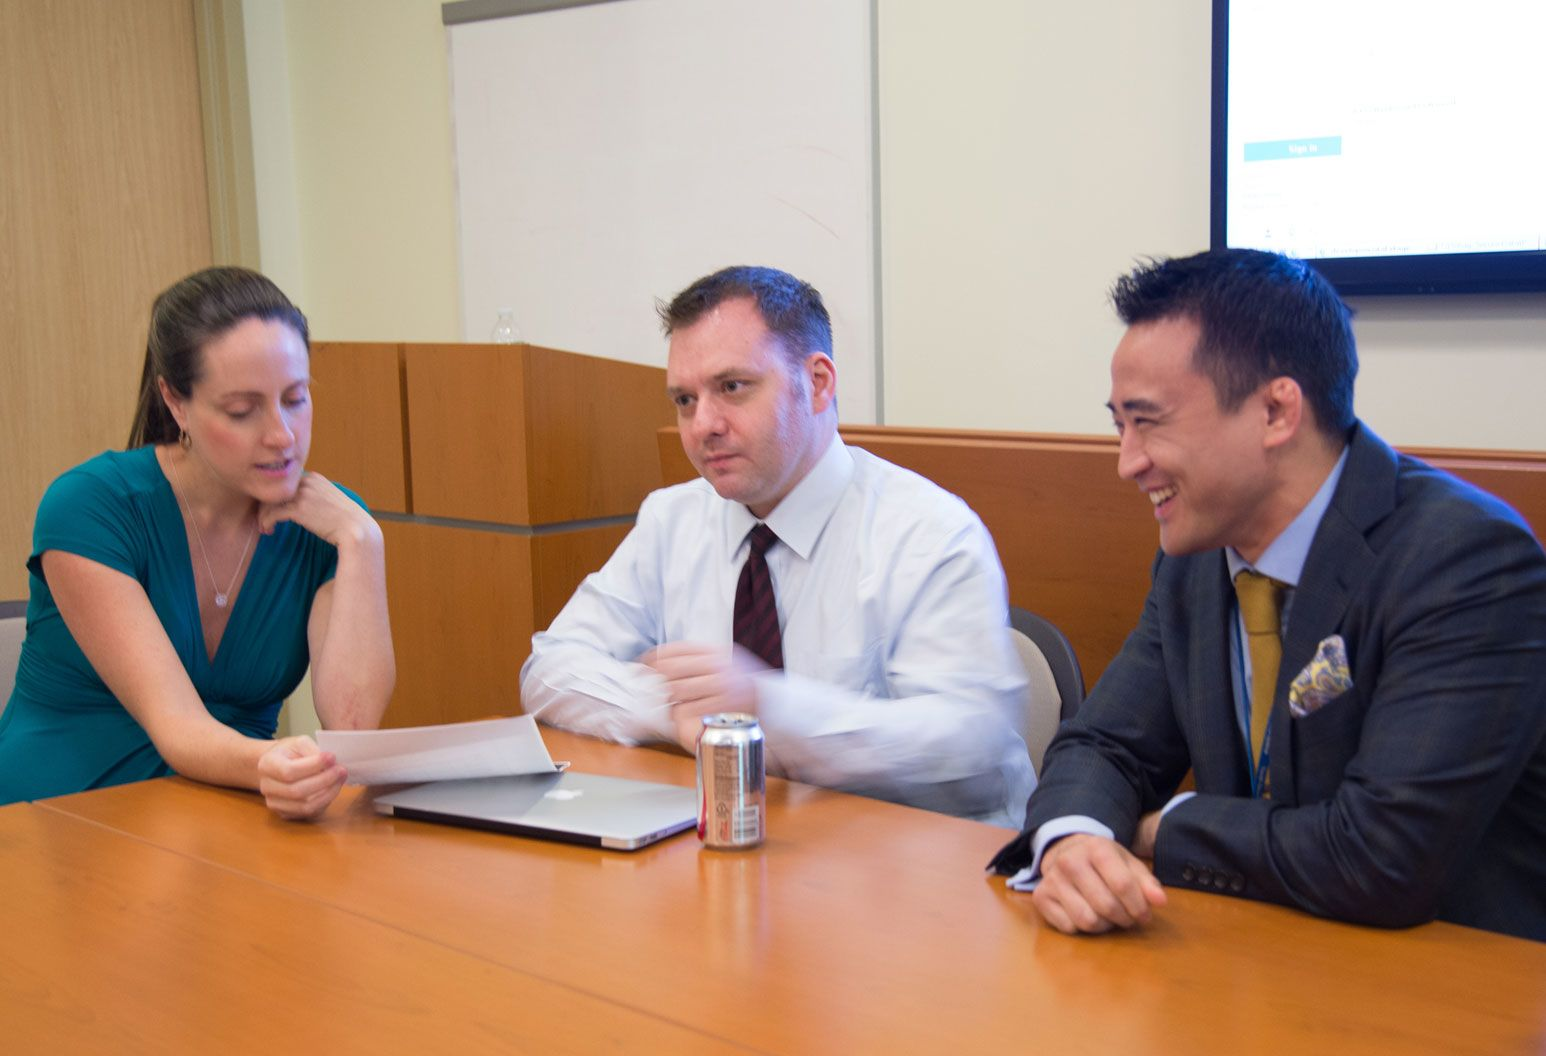 Faculty and residents discussing a pathways project - Adult Psychiatry Residency program at Zucker Hillside Hospital